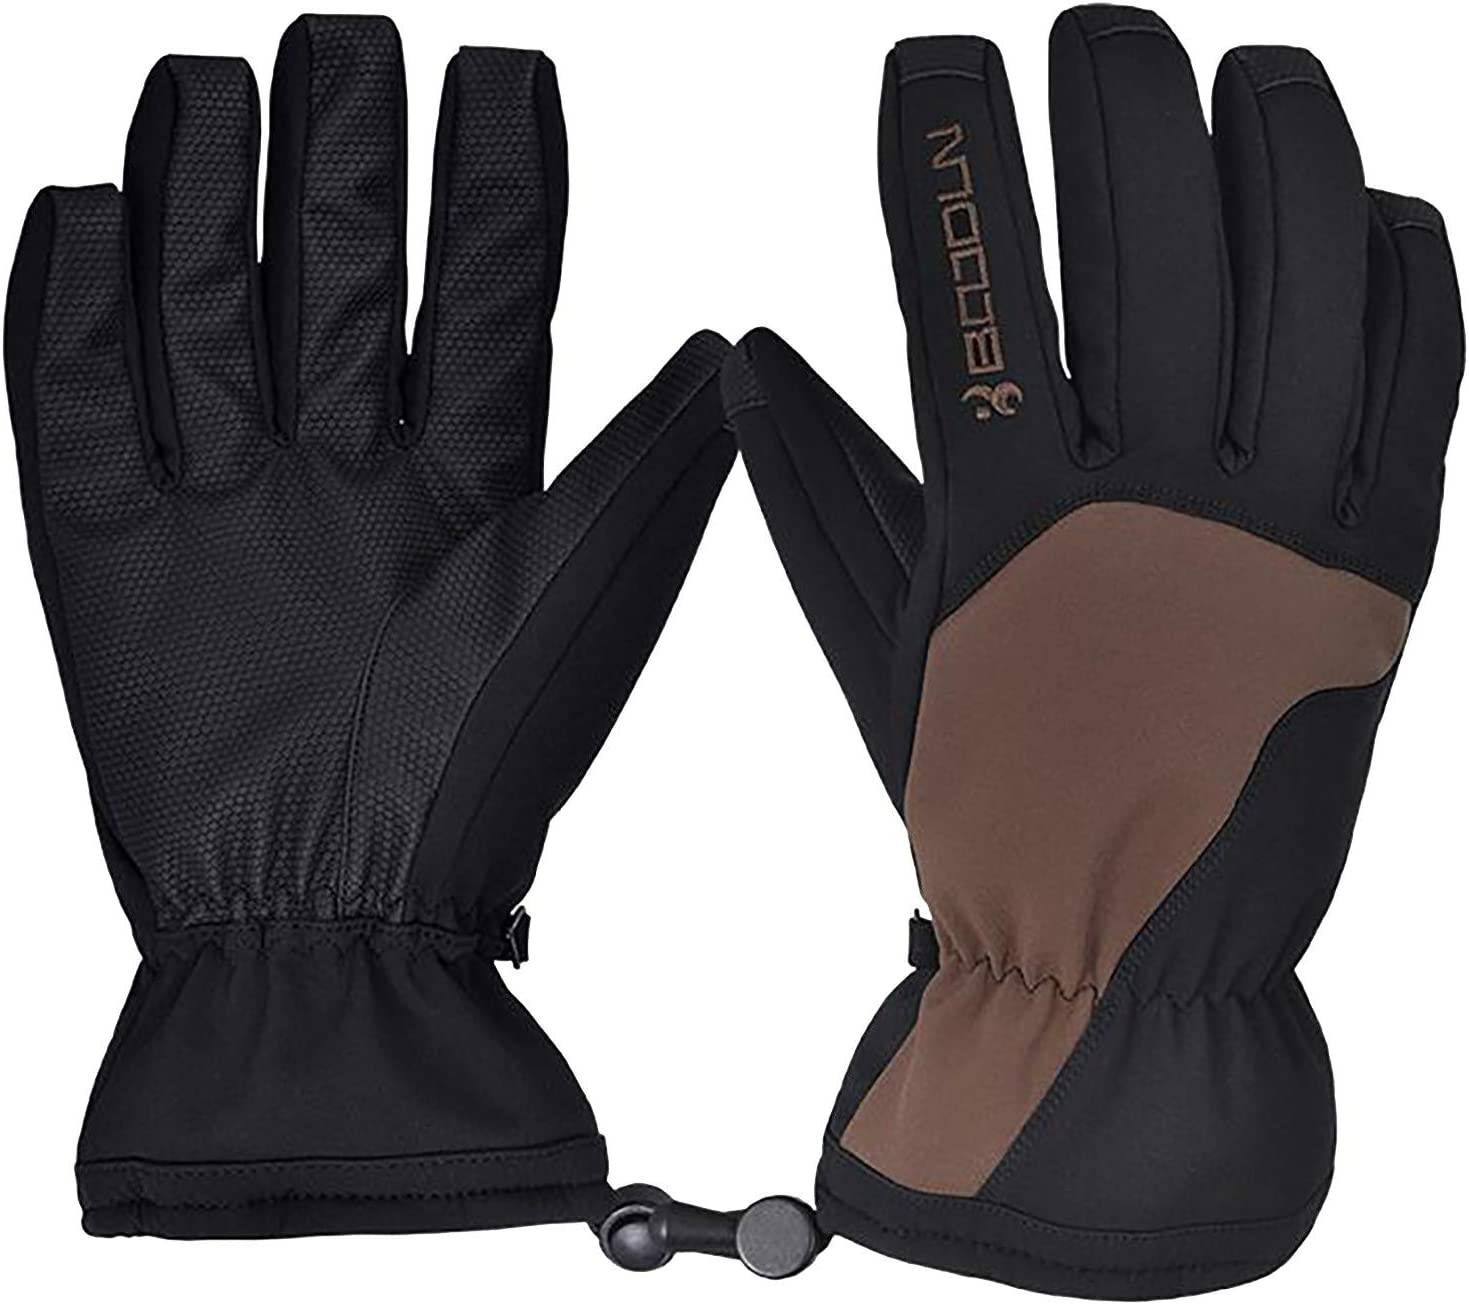 Unisex Winter Gloves Cold Weather Windproof Waterproof Running Cycling Driving Sports Gloves Warm Gifts for Men Women